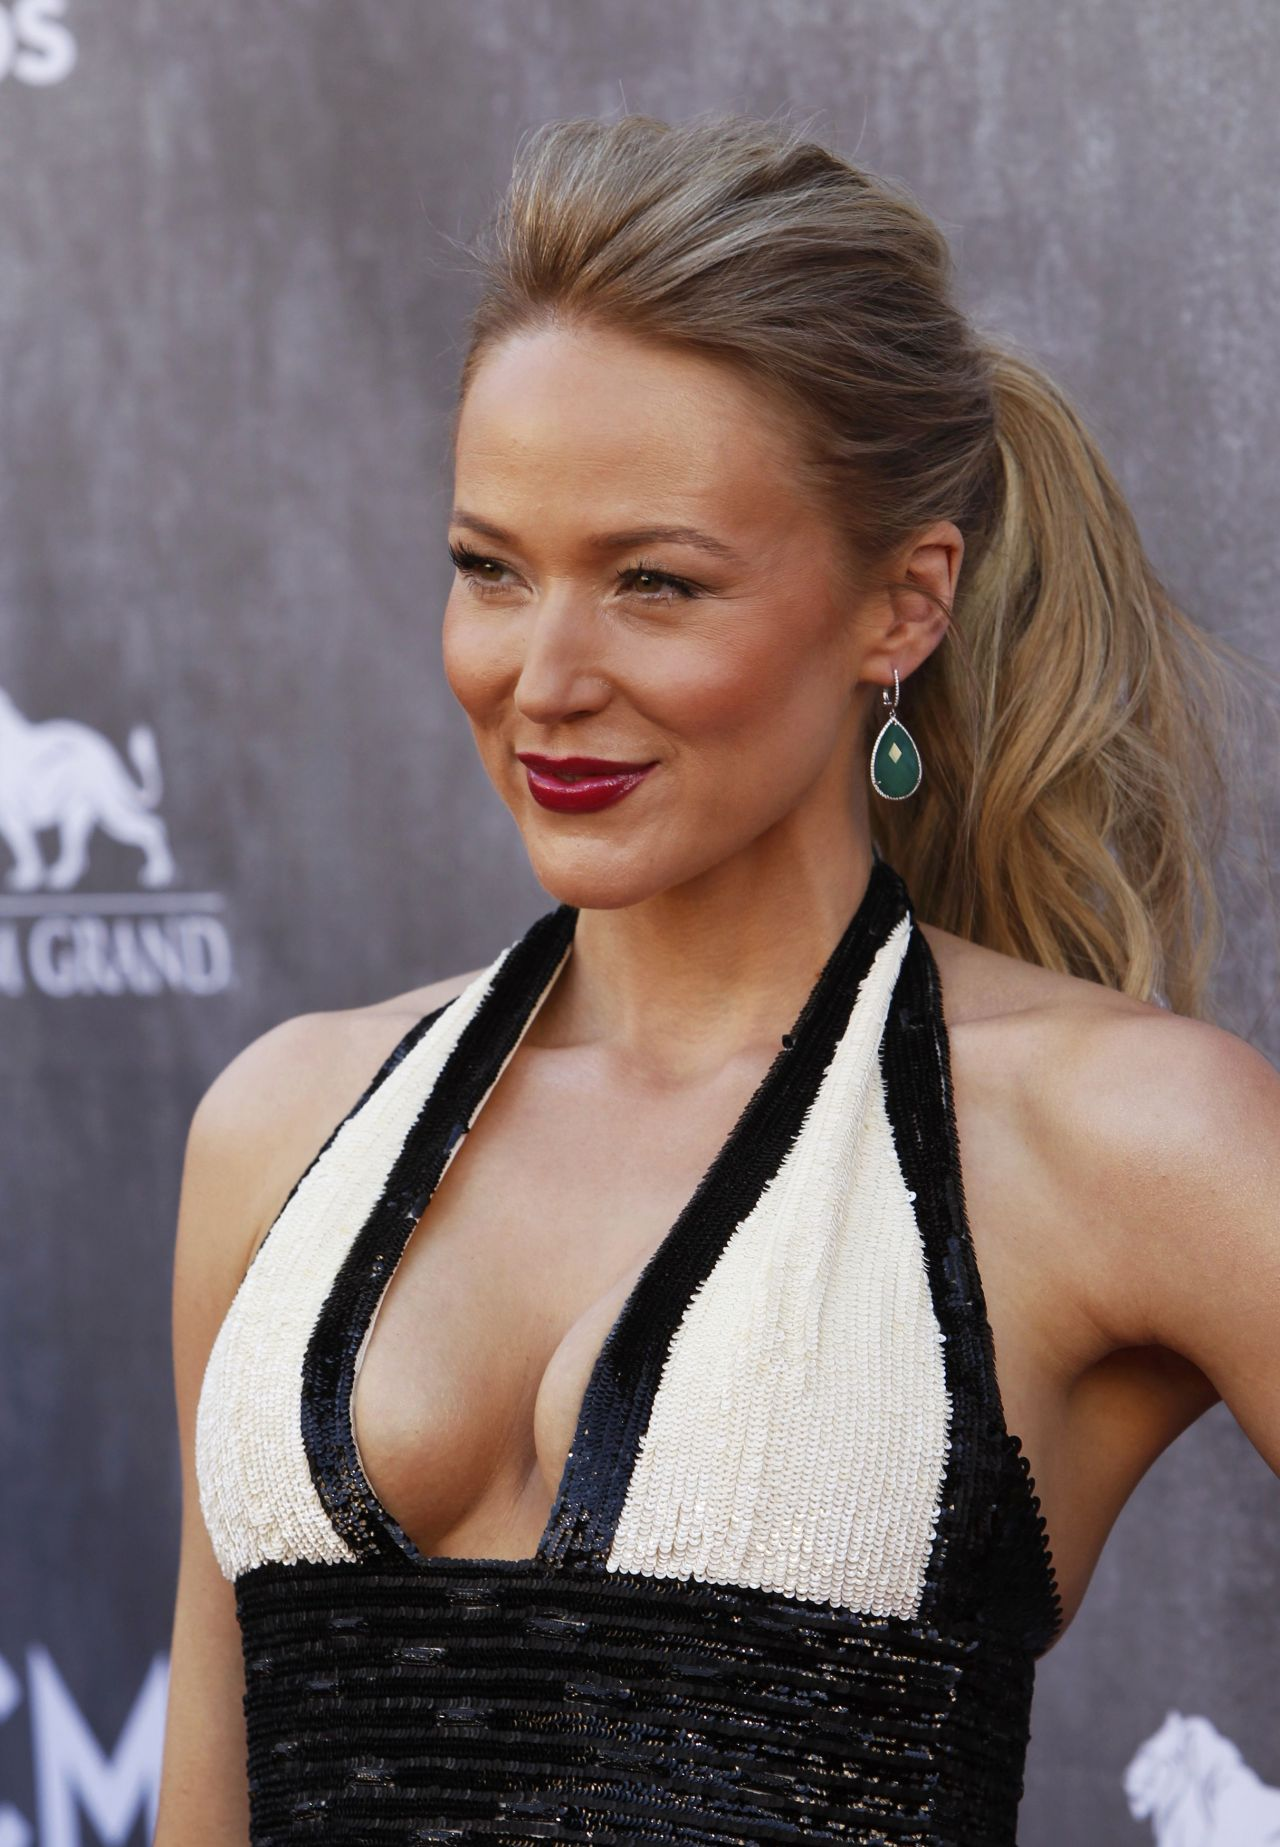 Jewel Kilcher - 2014 Academy Of Country Music Awards in Las Vegas